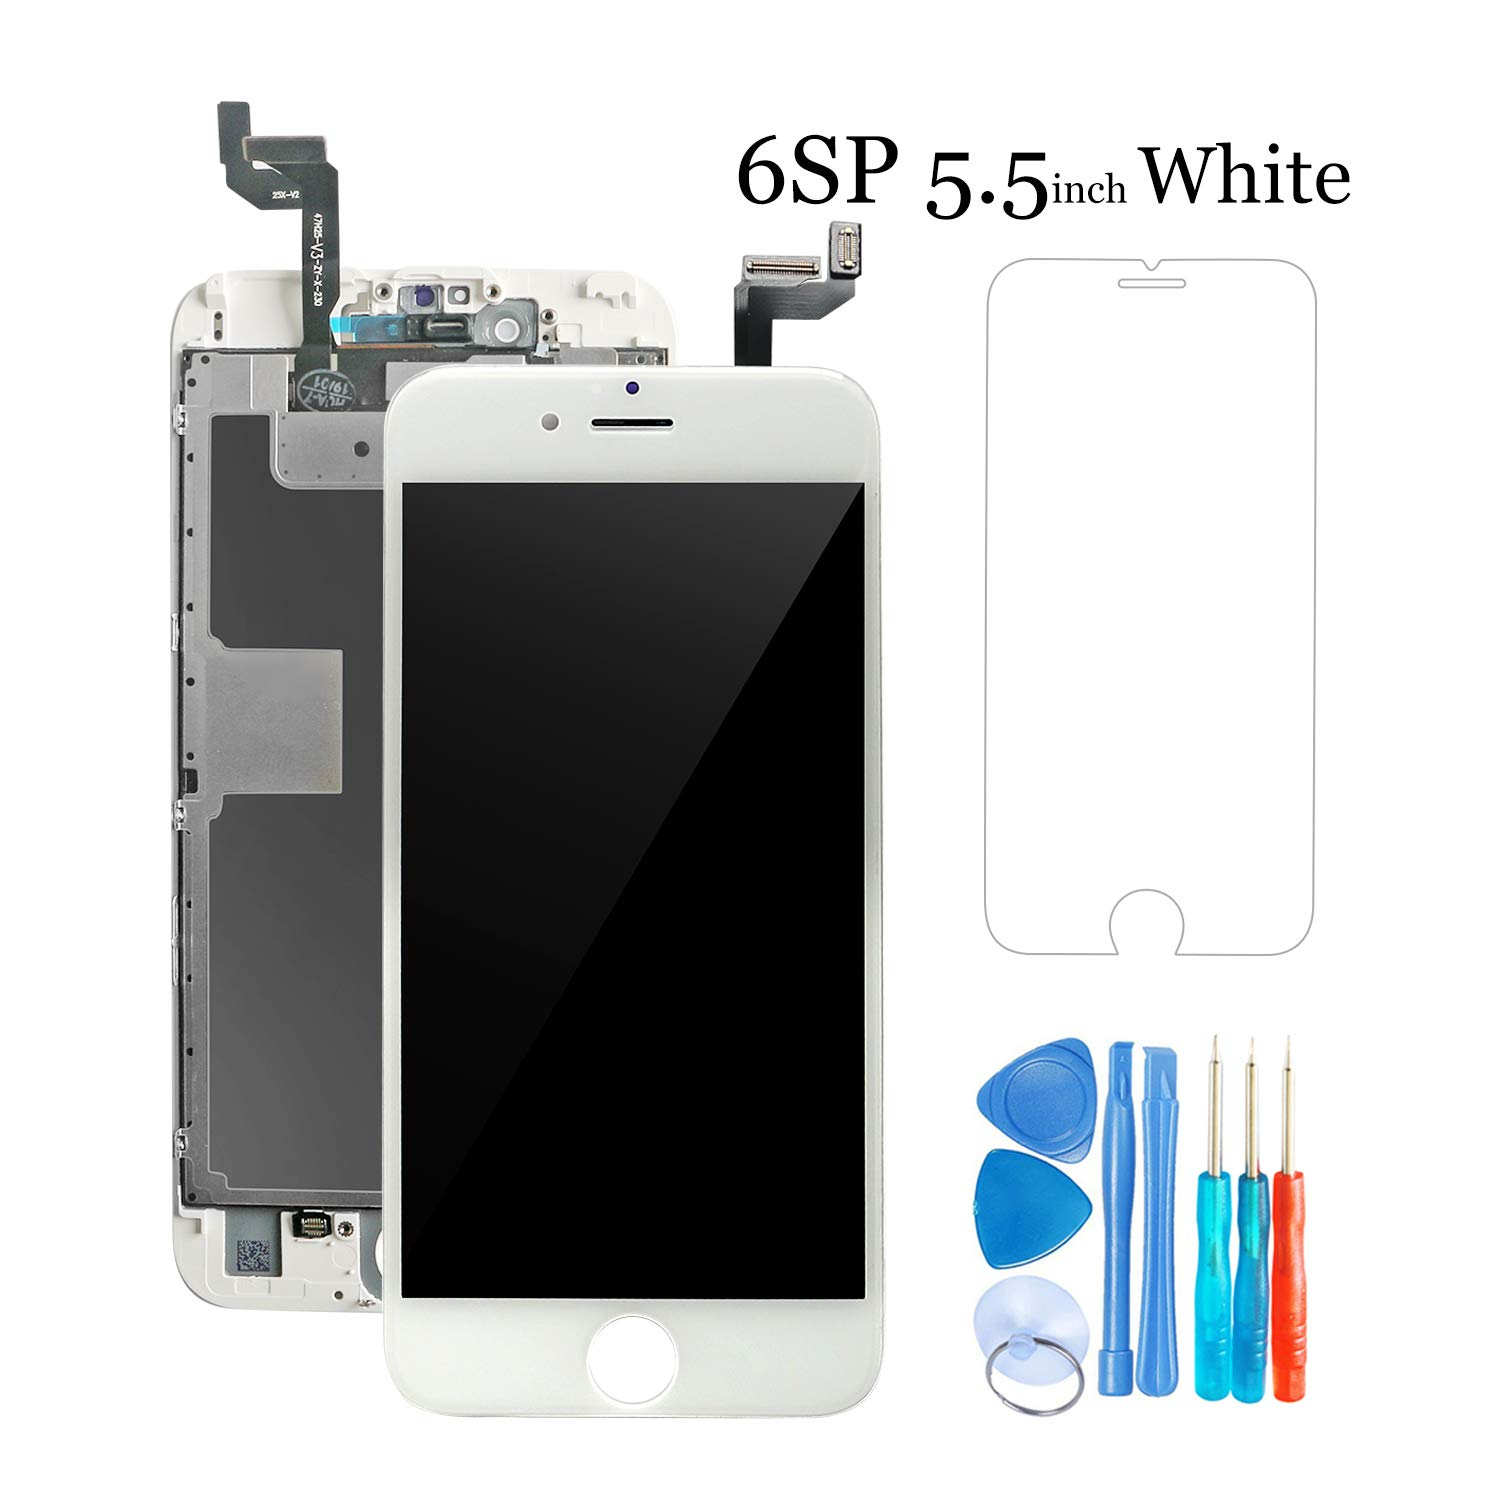 Screen Replacement Compatible for iPhone 6S Plus (5.5''), Hkhuibang Advanced LCD Display with 3D Touch Screen Digitizer Frame Complete Full Assembly and Back-Plate Pre-Installed (6SP White)